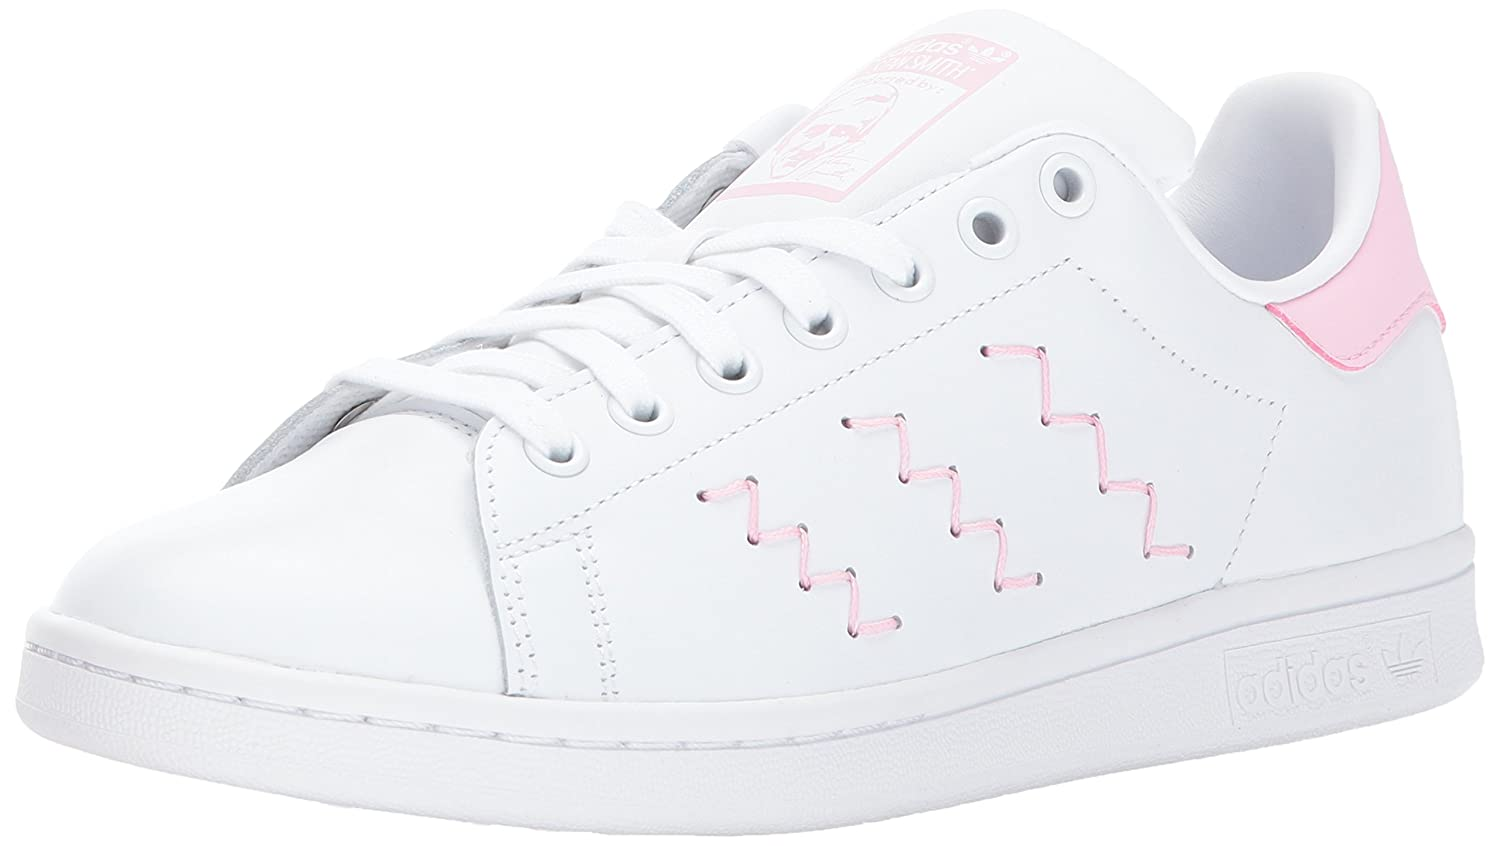 adidas Originals Women's Stan Smith W Fashion Sneaker B01MU0PIM3 5.5 B(M) US|White/White/Wonder Pink